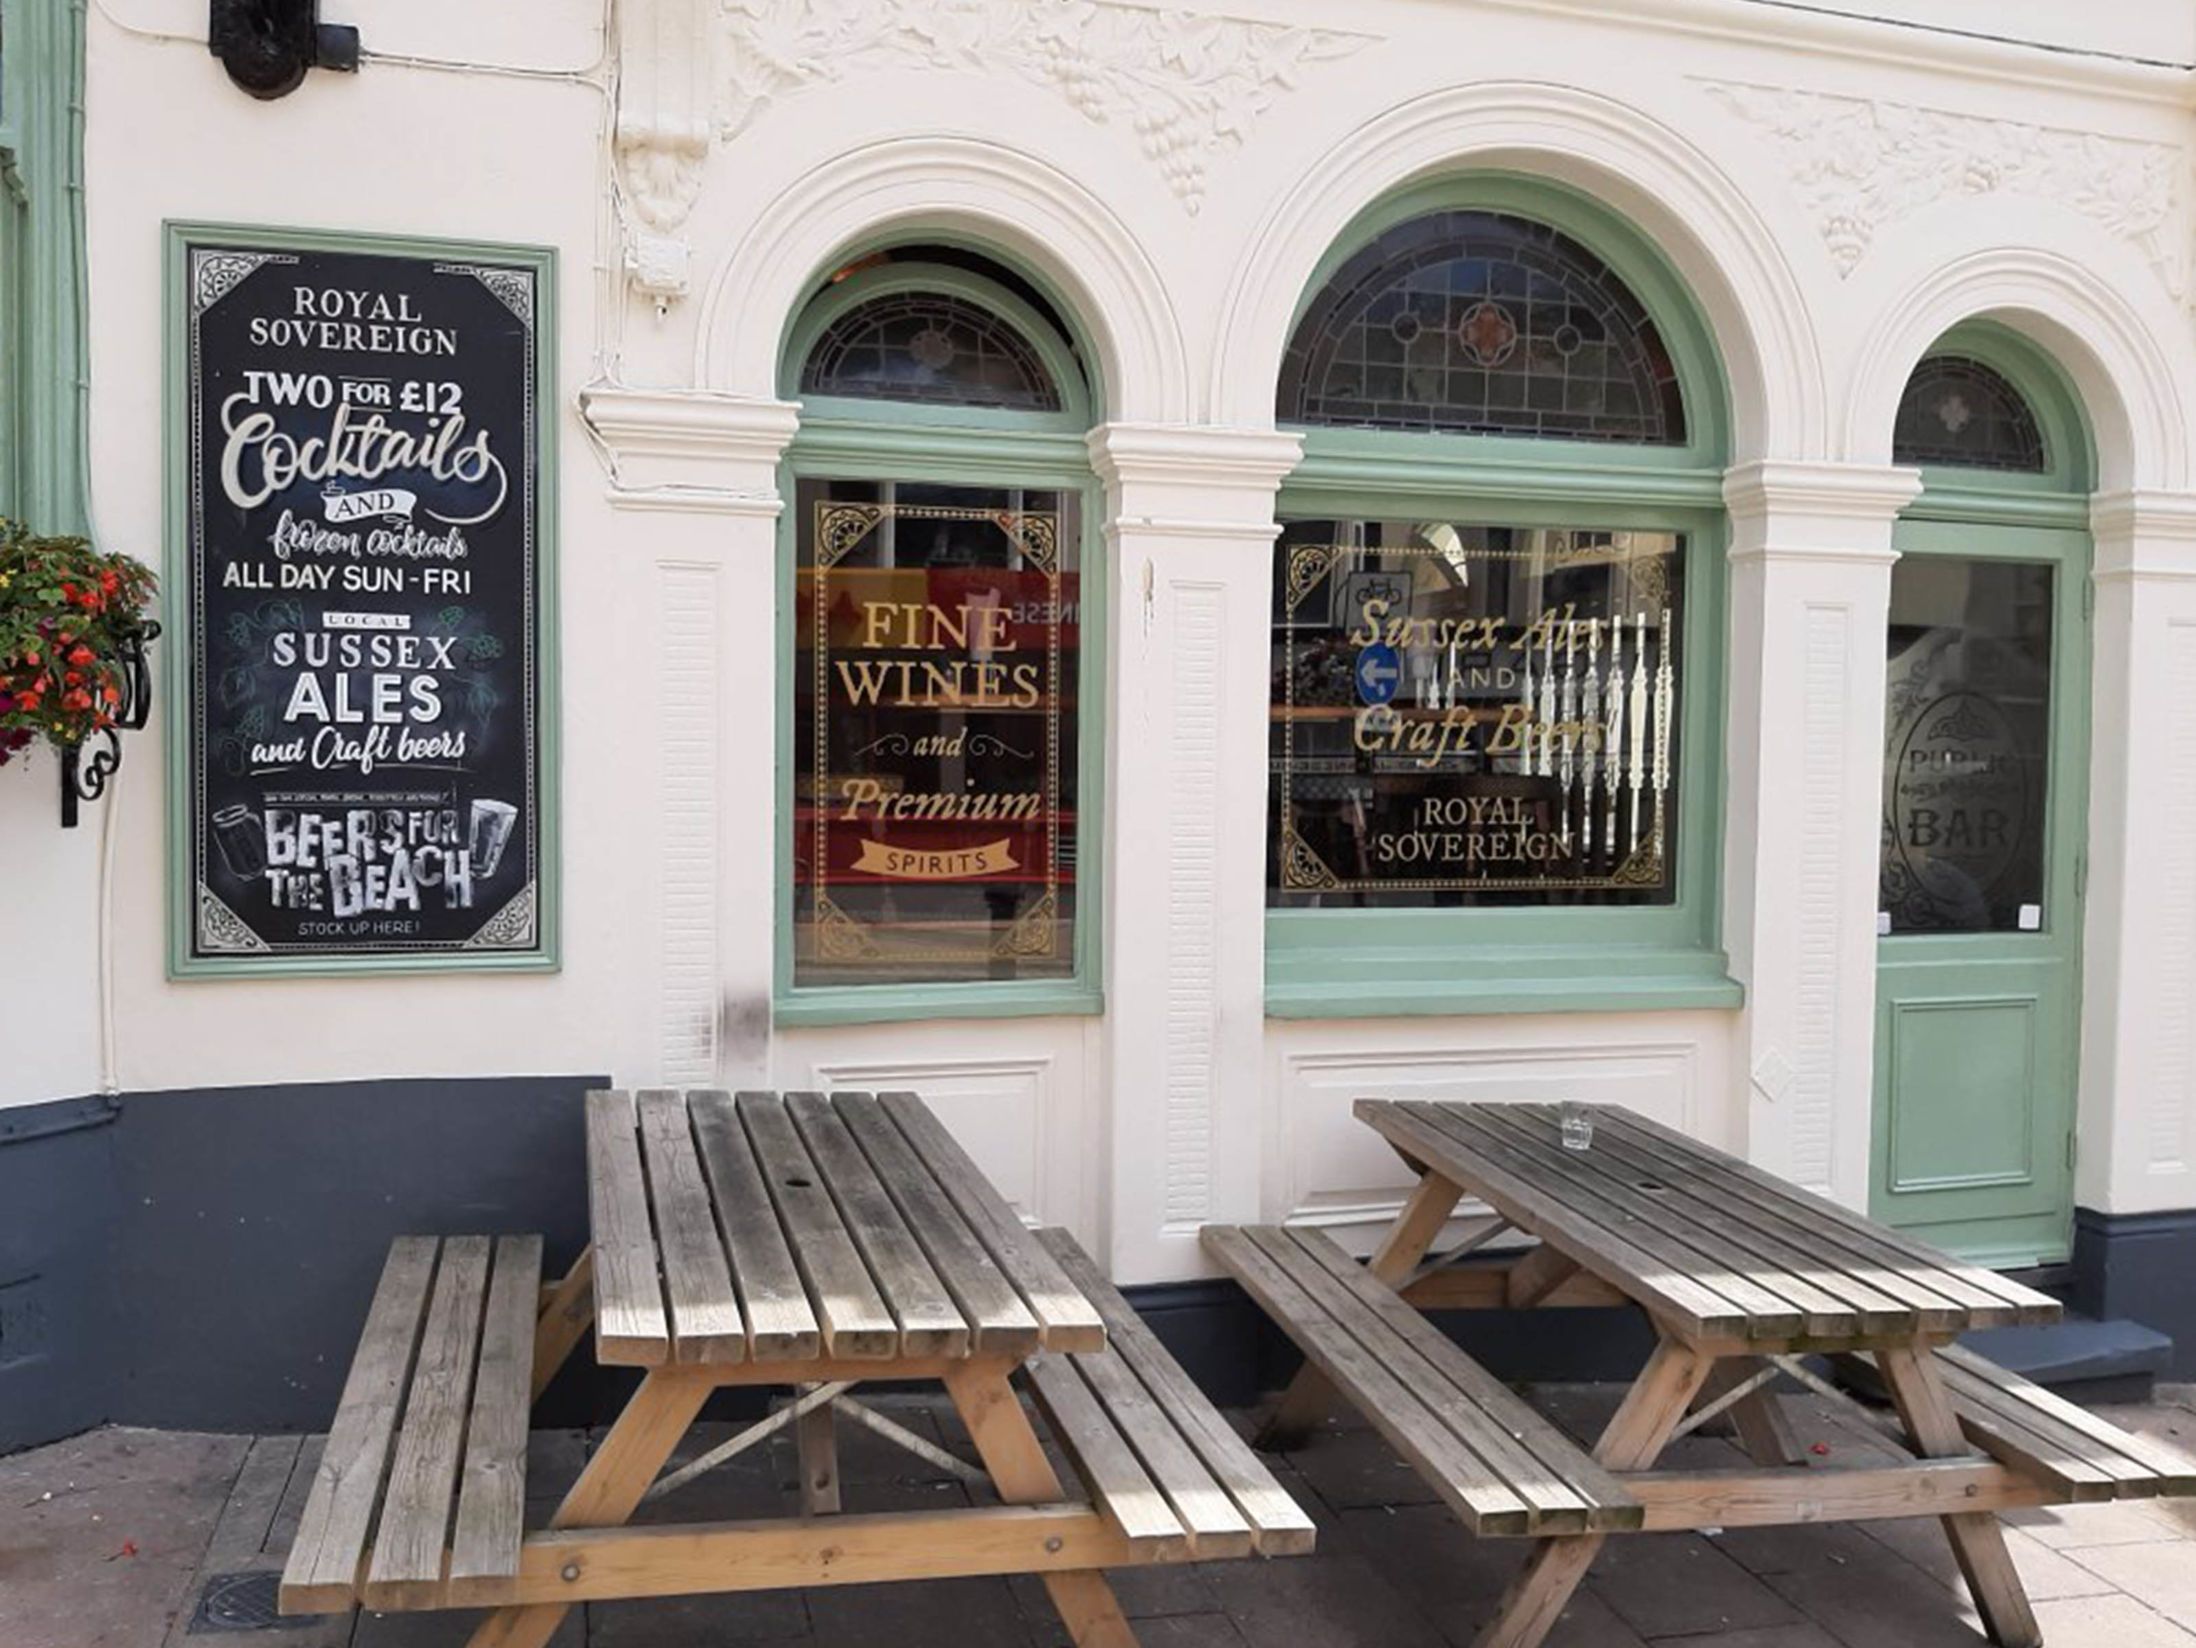 Best Pubs in Brighton - The Royal Sovereign